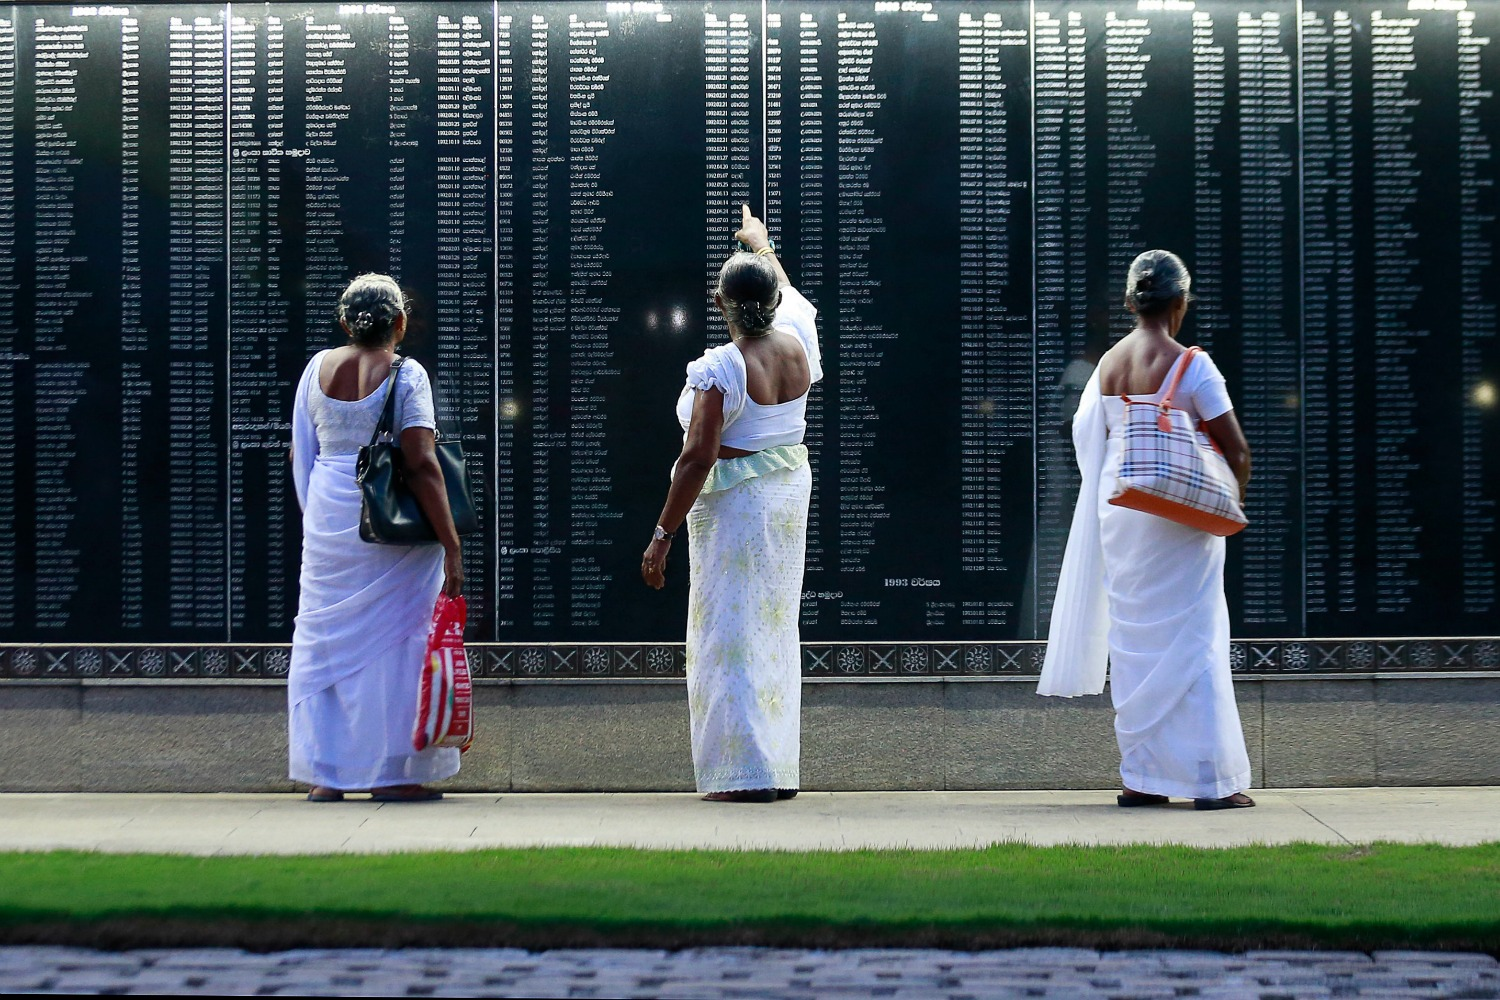 Sri Lankan mothers check for the names of their sons on a memorial to fallen soldiers.